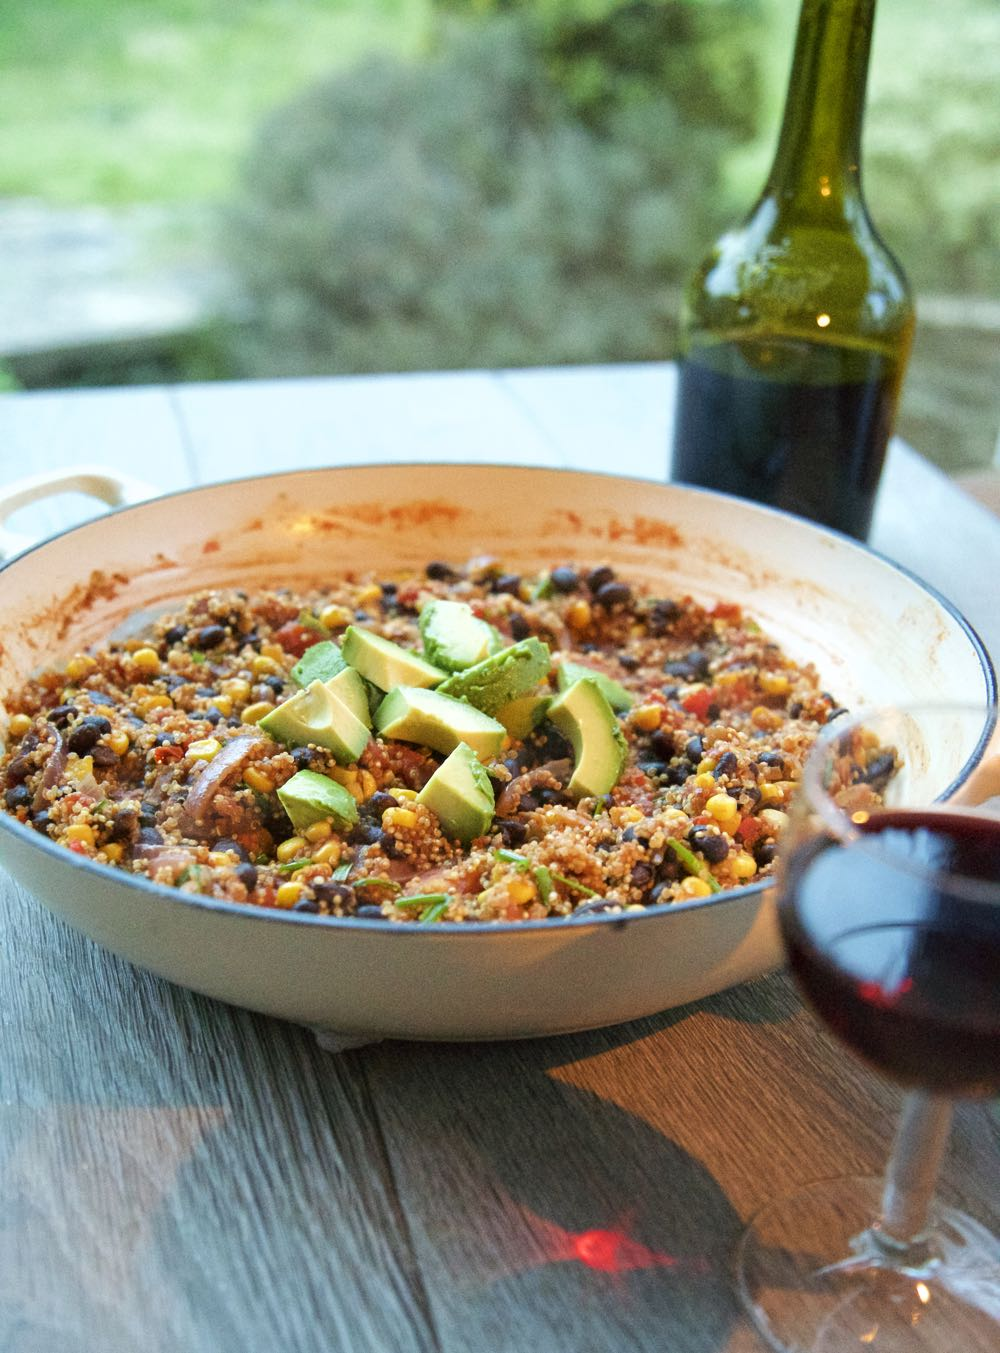 Quinoa chilli ready to eat, with added avocado and served with wine.